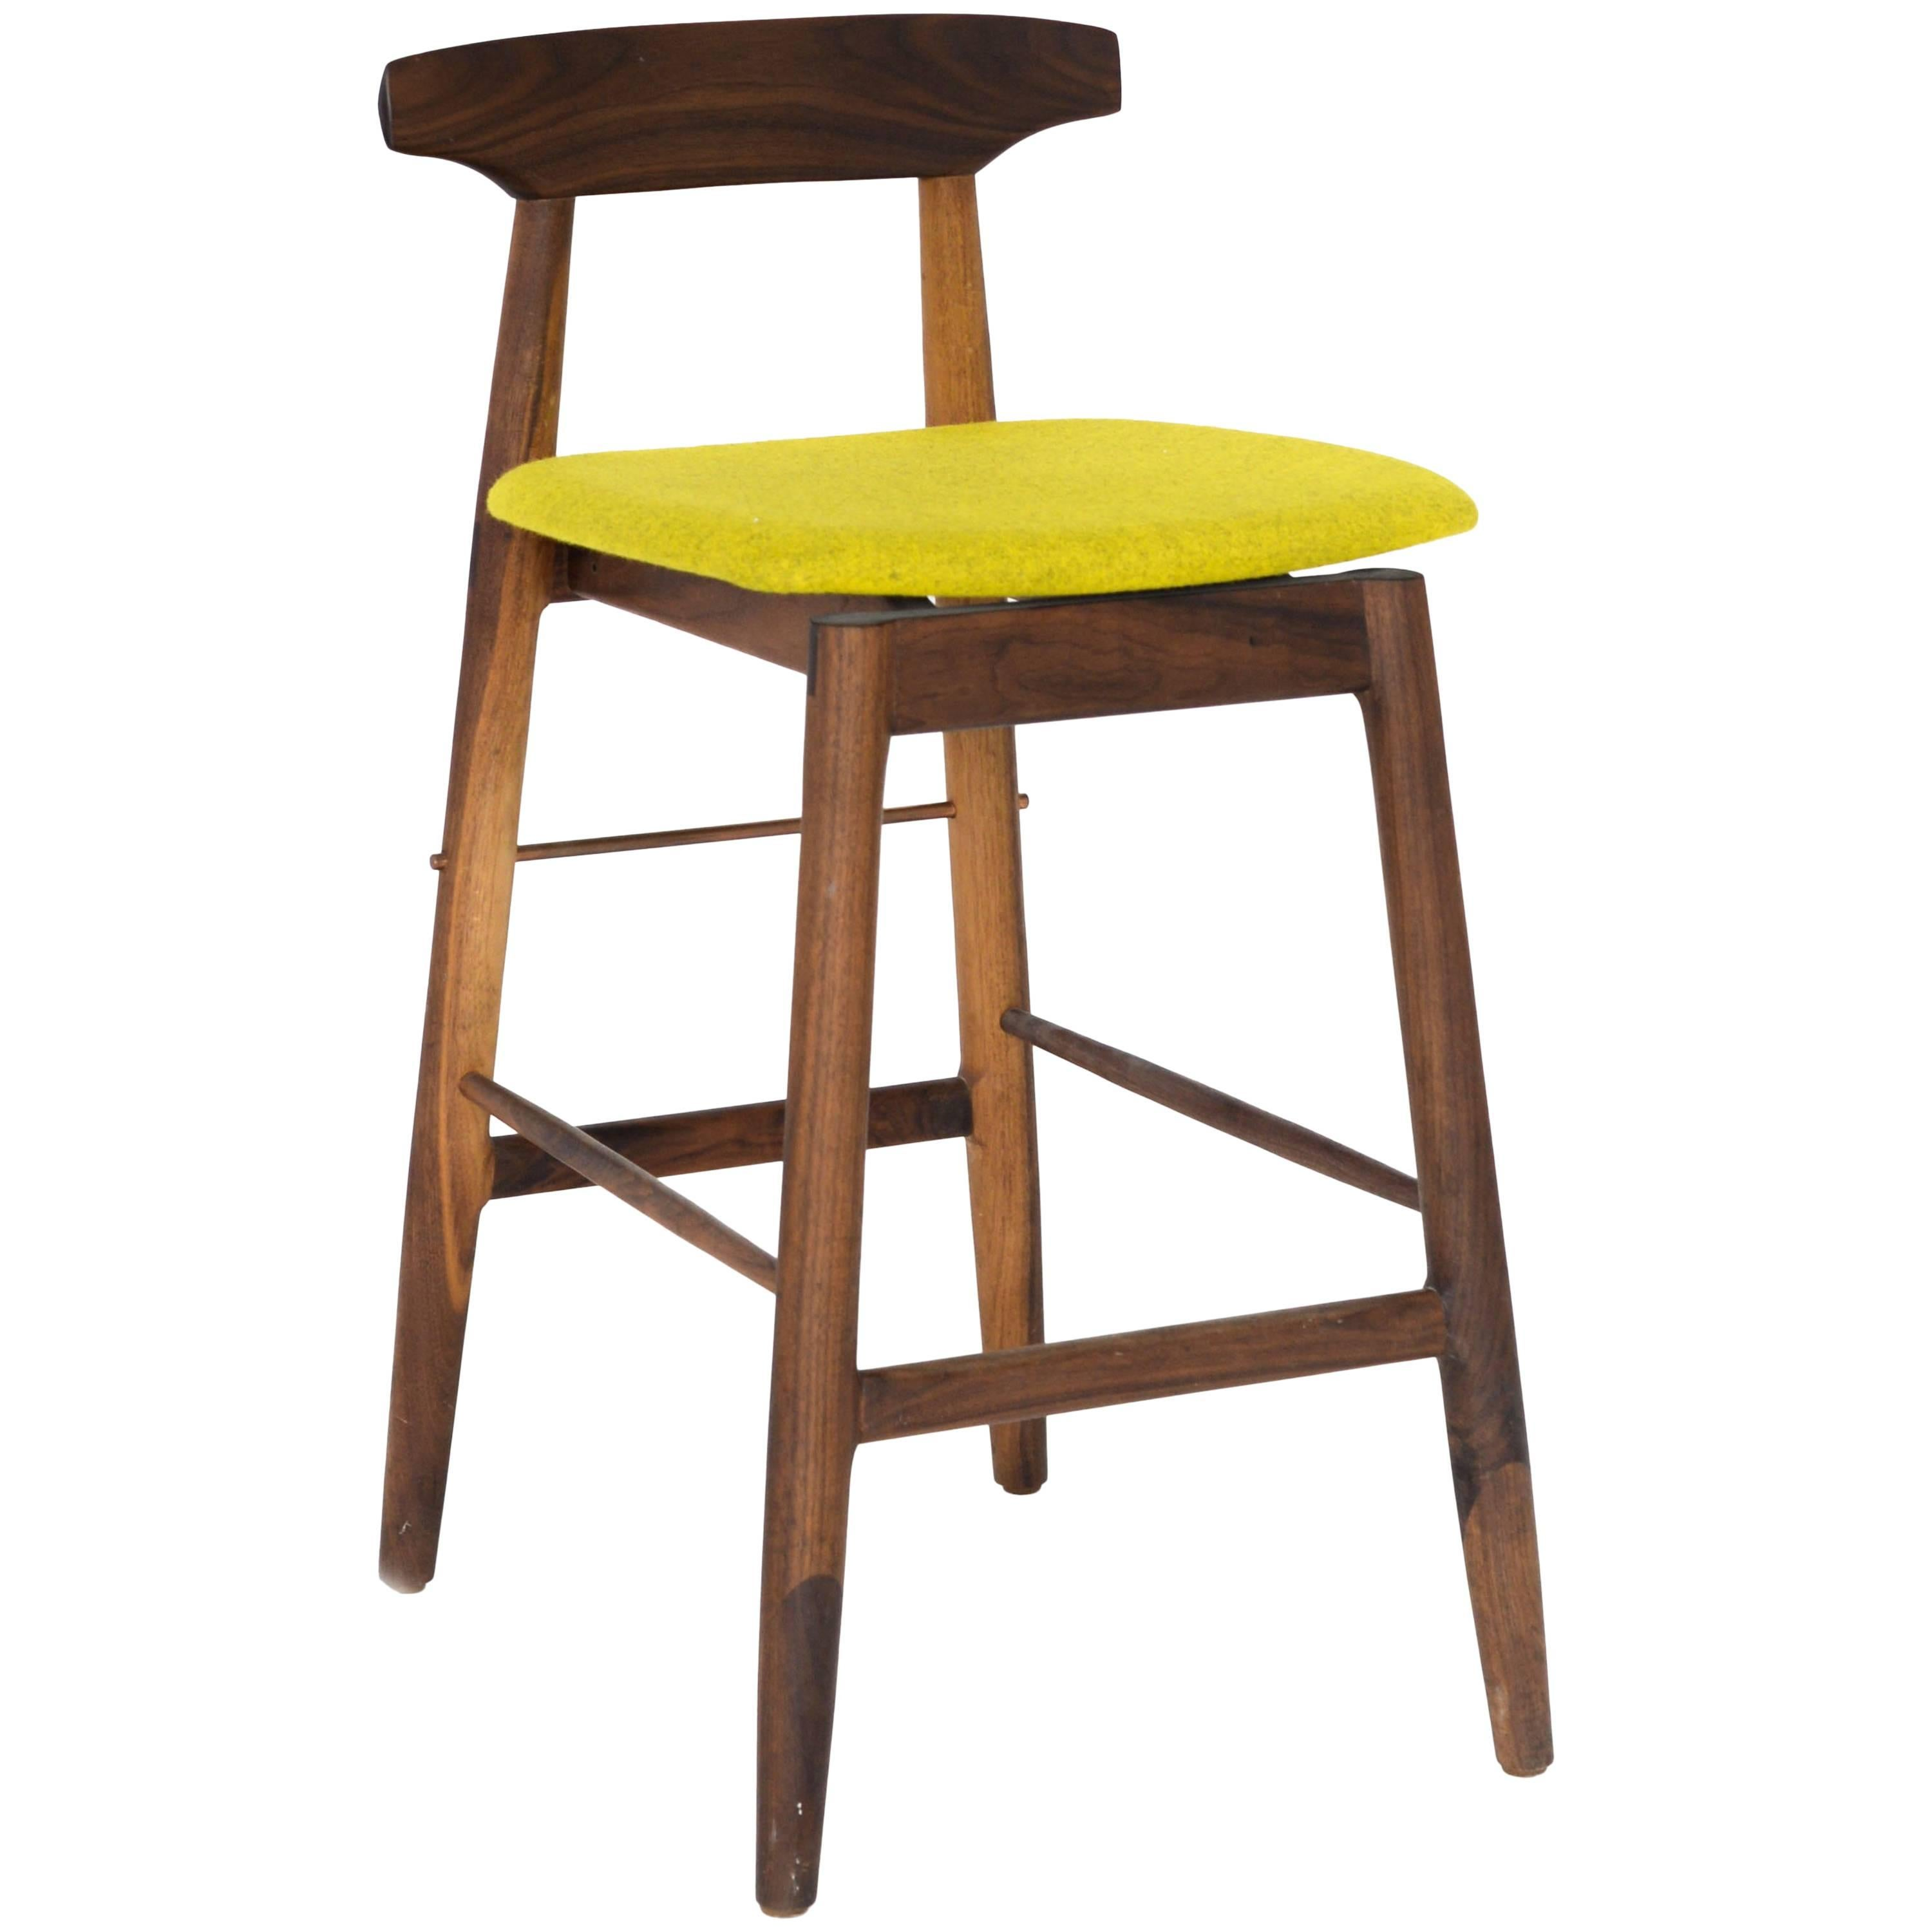 Walnut and Copper Wood High Stool with Custom Teal Felt Upholstery